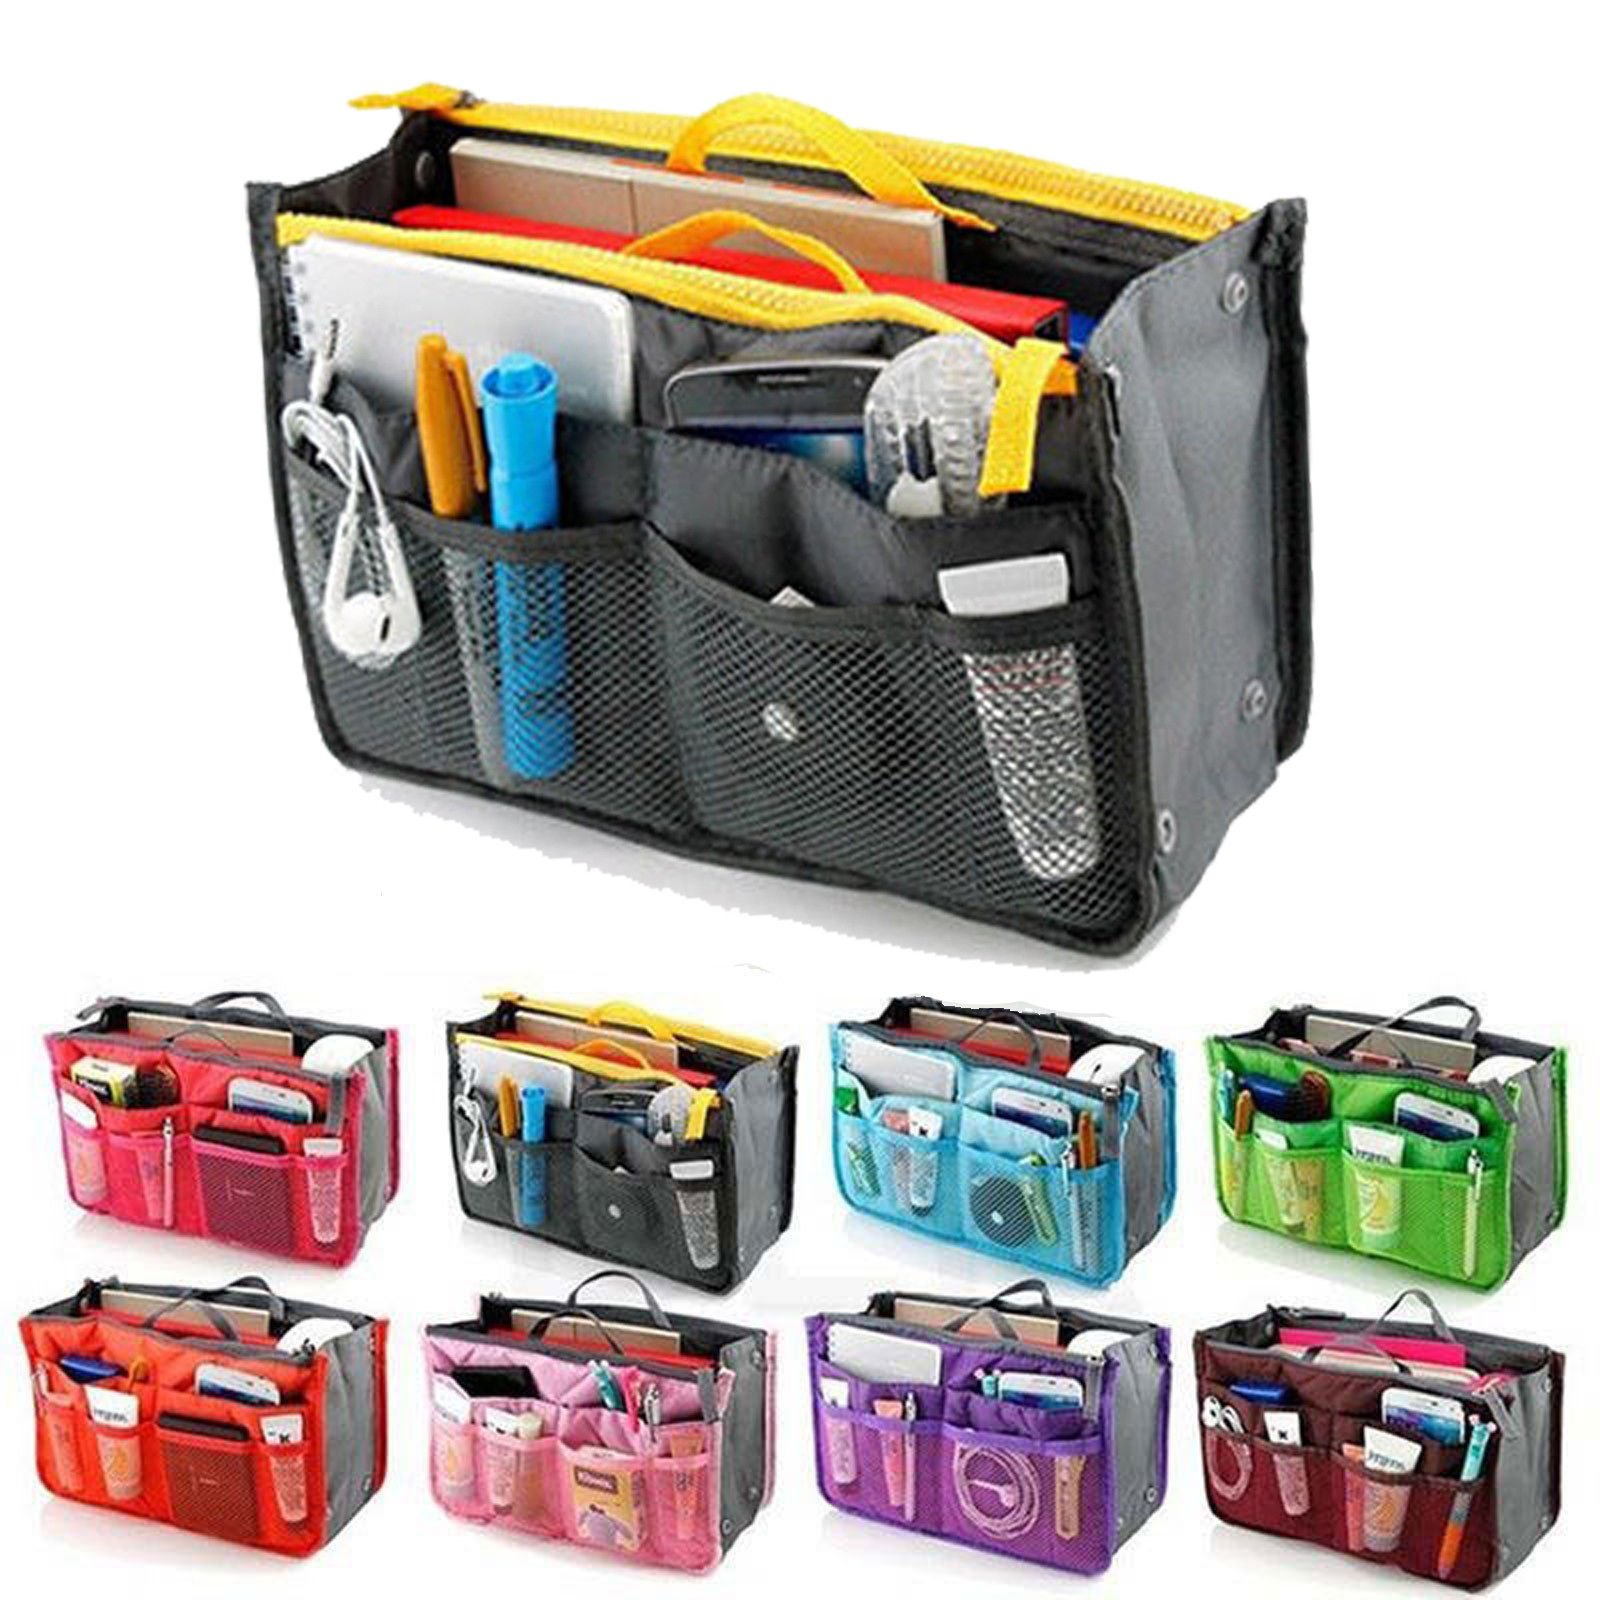 Handy Travel Insert Makeup Cosmetic Bag Large Handbag Storage Organize...